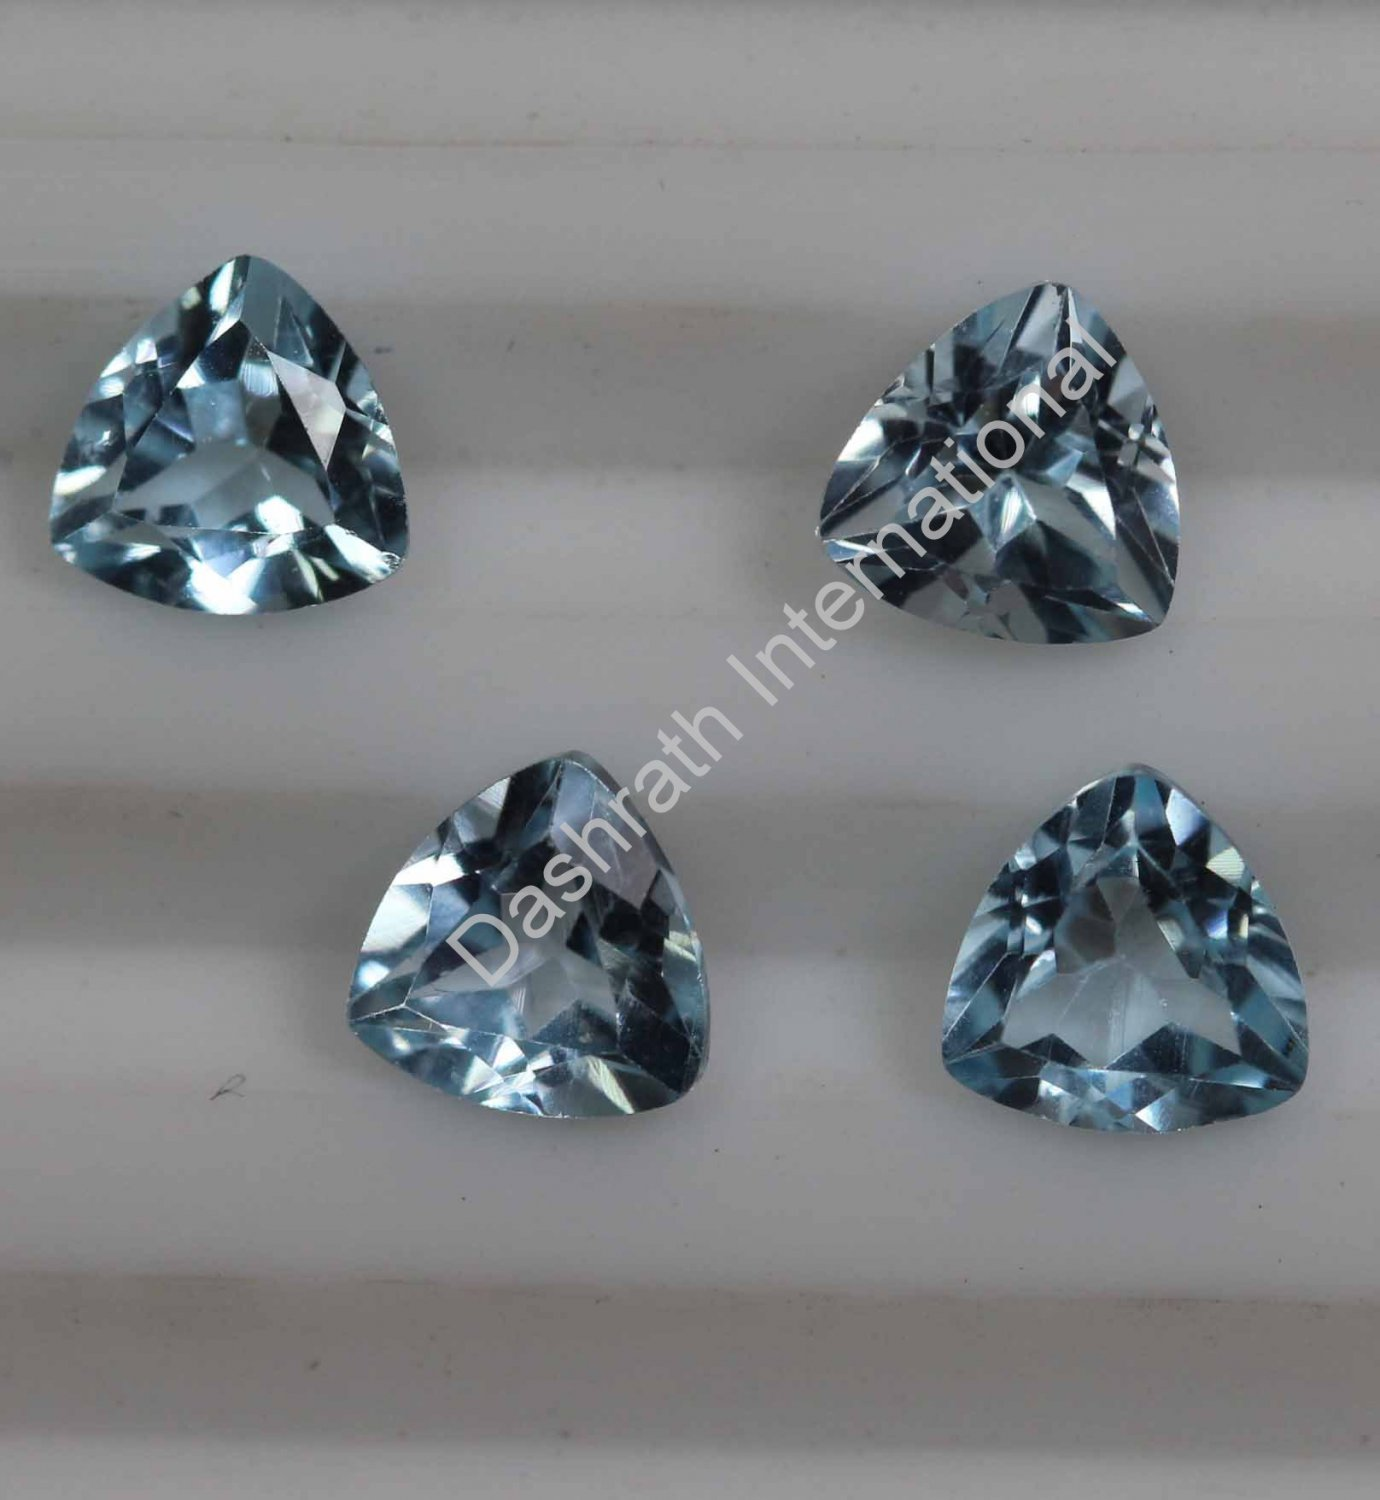 6mm Natural Sky Blue Topaz Faceted Cut Trillion 50 Pieces Lot Top Quality Loose Gemstone